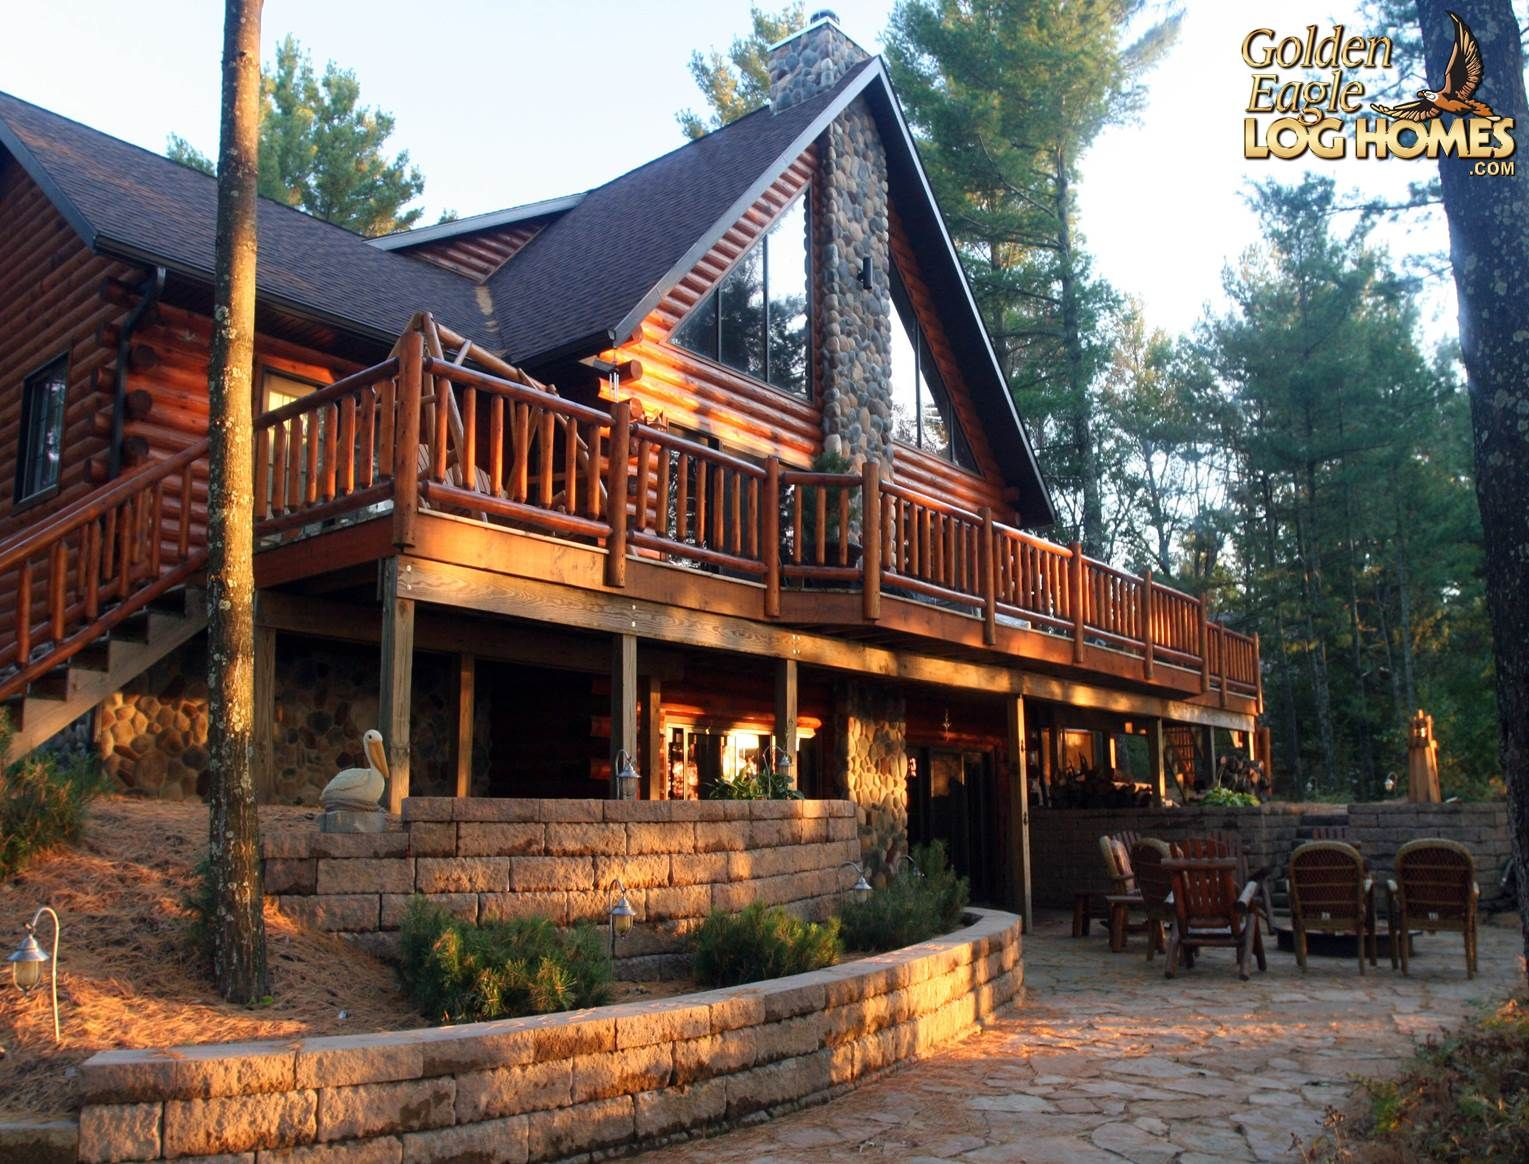 Log Homes And Log Home Floor Plans Cabins By Golden Eagle Log Homes Free House Plans Ranch House Plans Ranch House Floor Plans